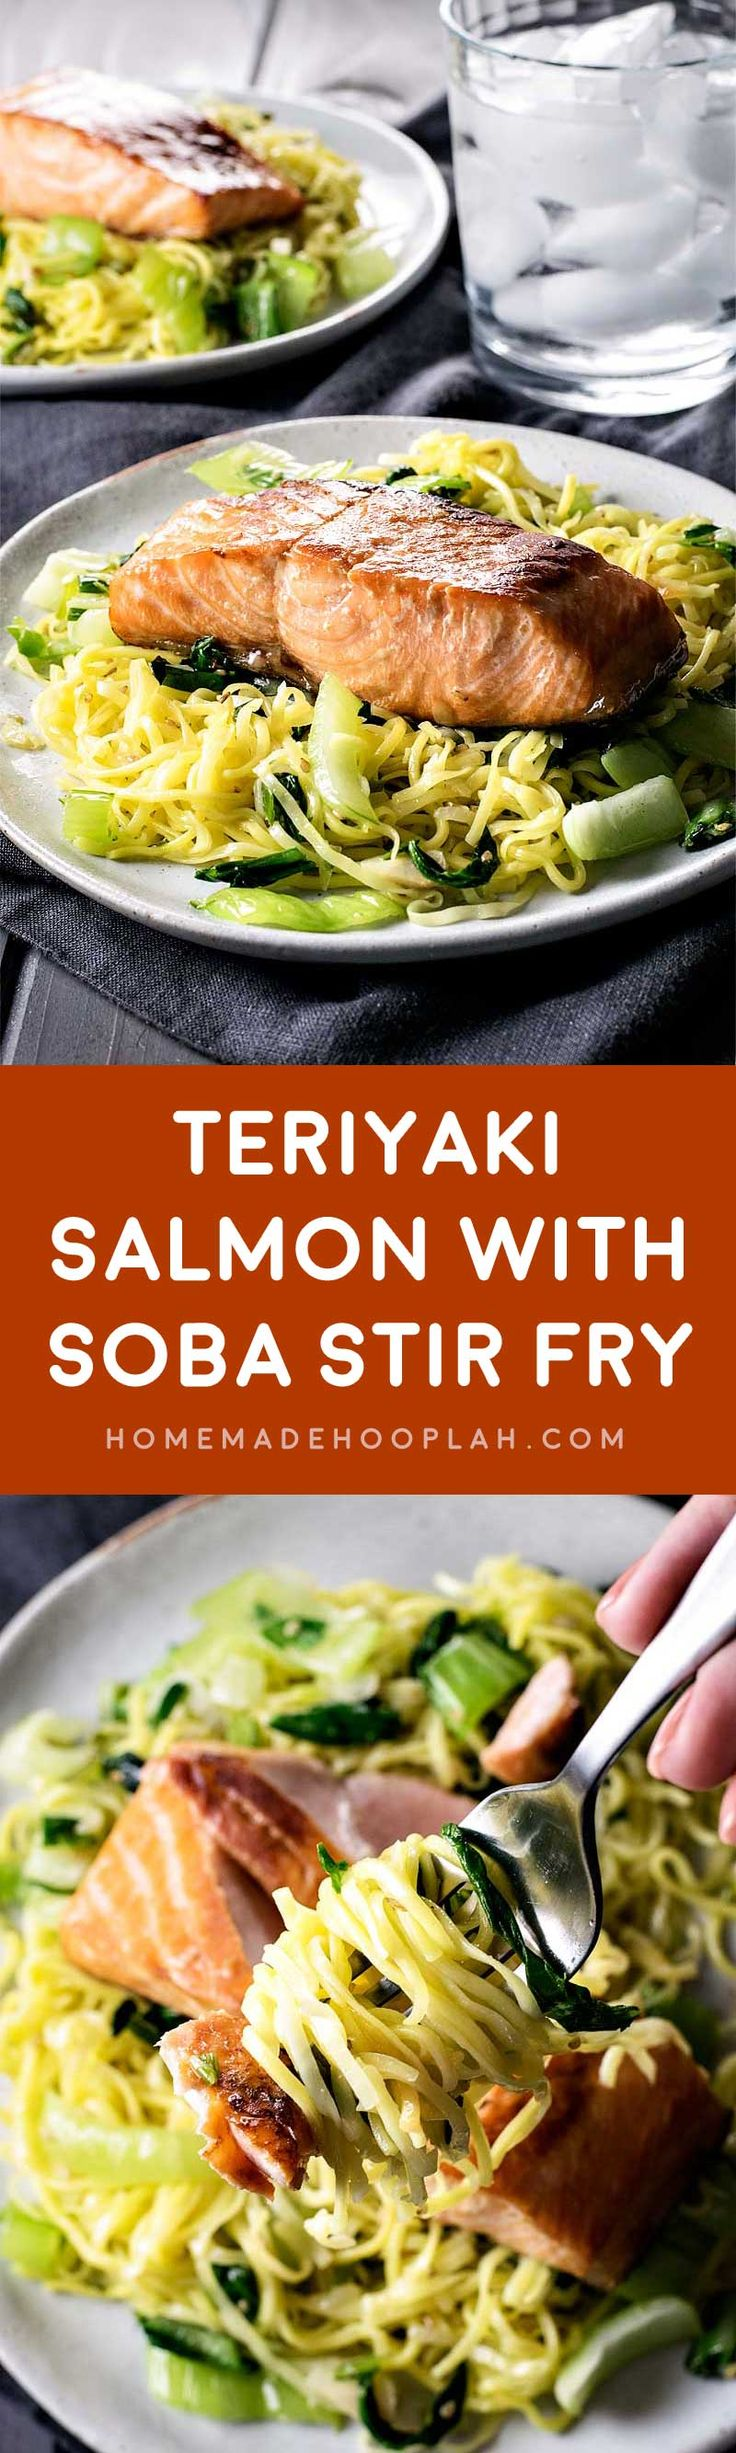 with Soba Stir Fry! Tender teriyaki salmon on a bed of soba noodle ...